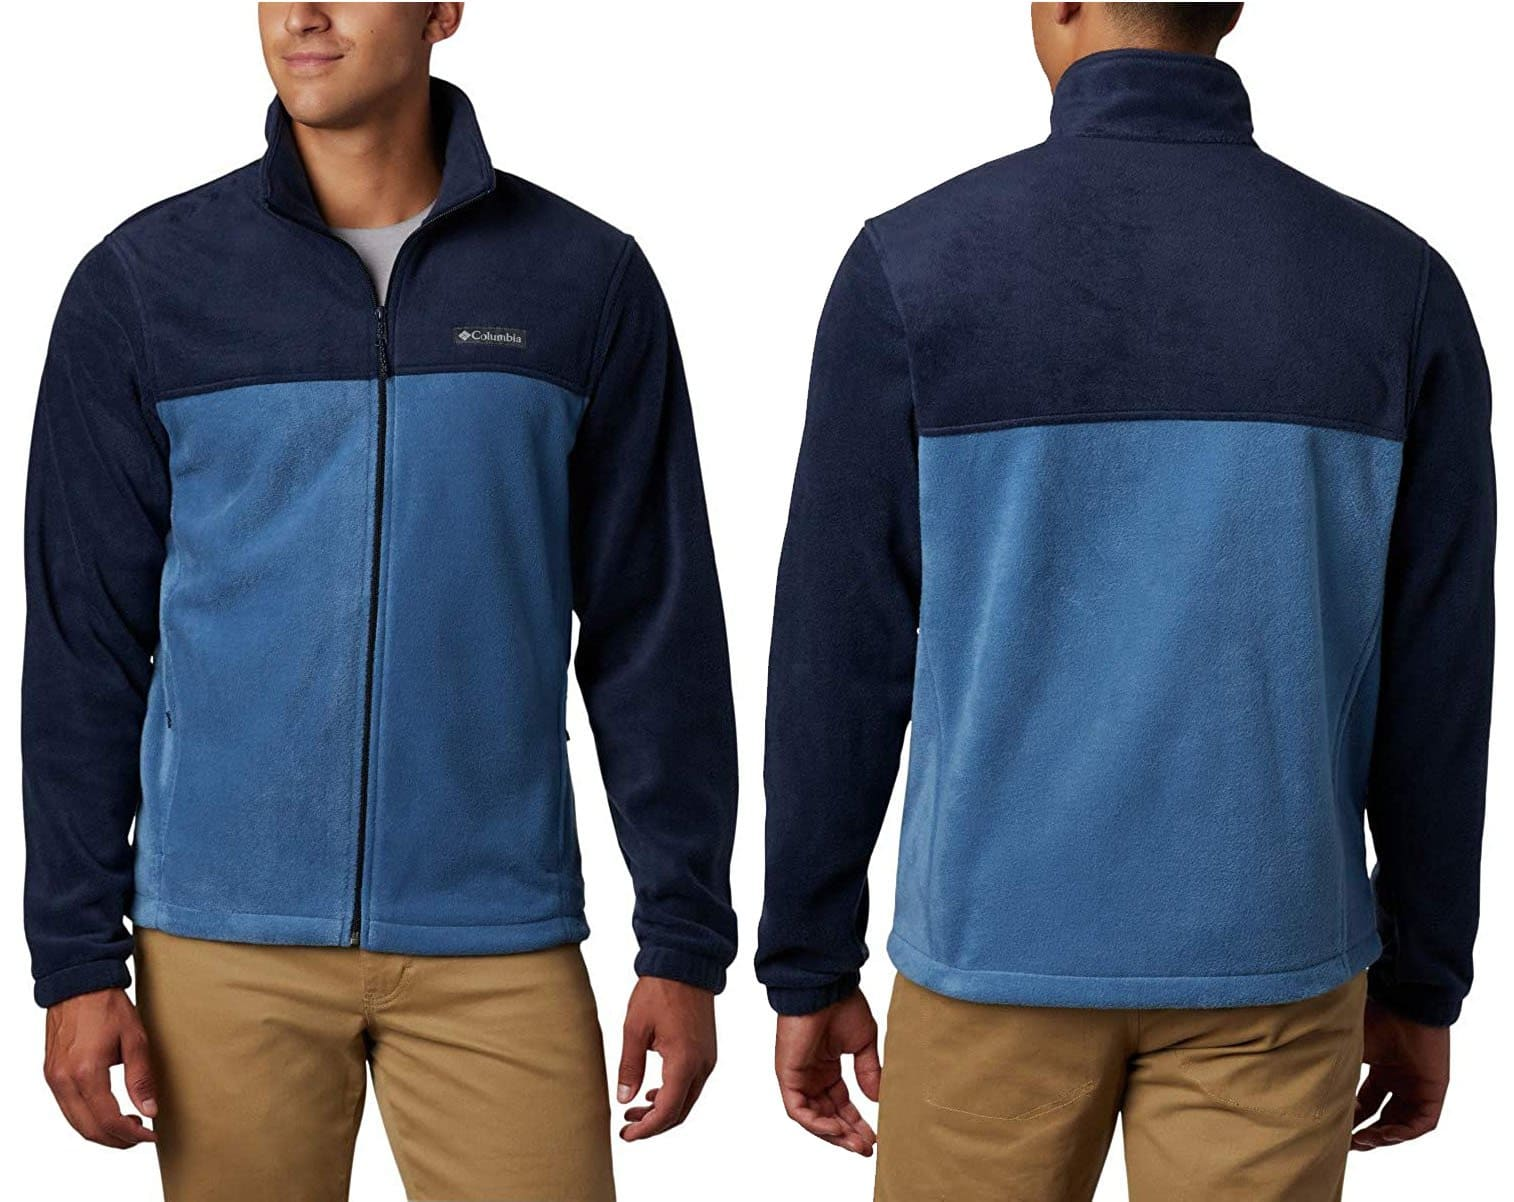 Columbia's Steens Mountain jacket is crafted from ultra-soft 100% polyester MTR filament fleece